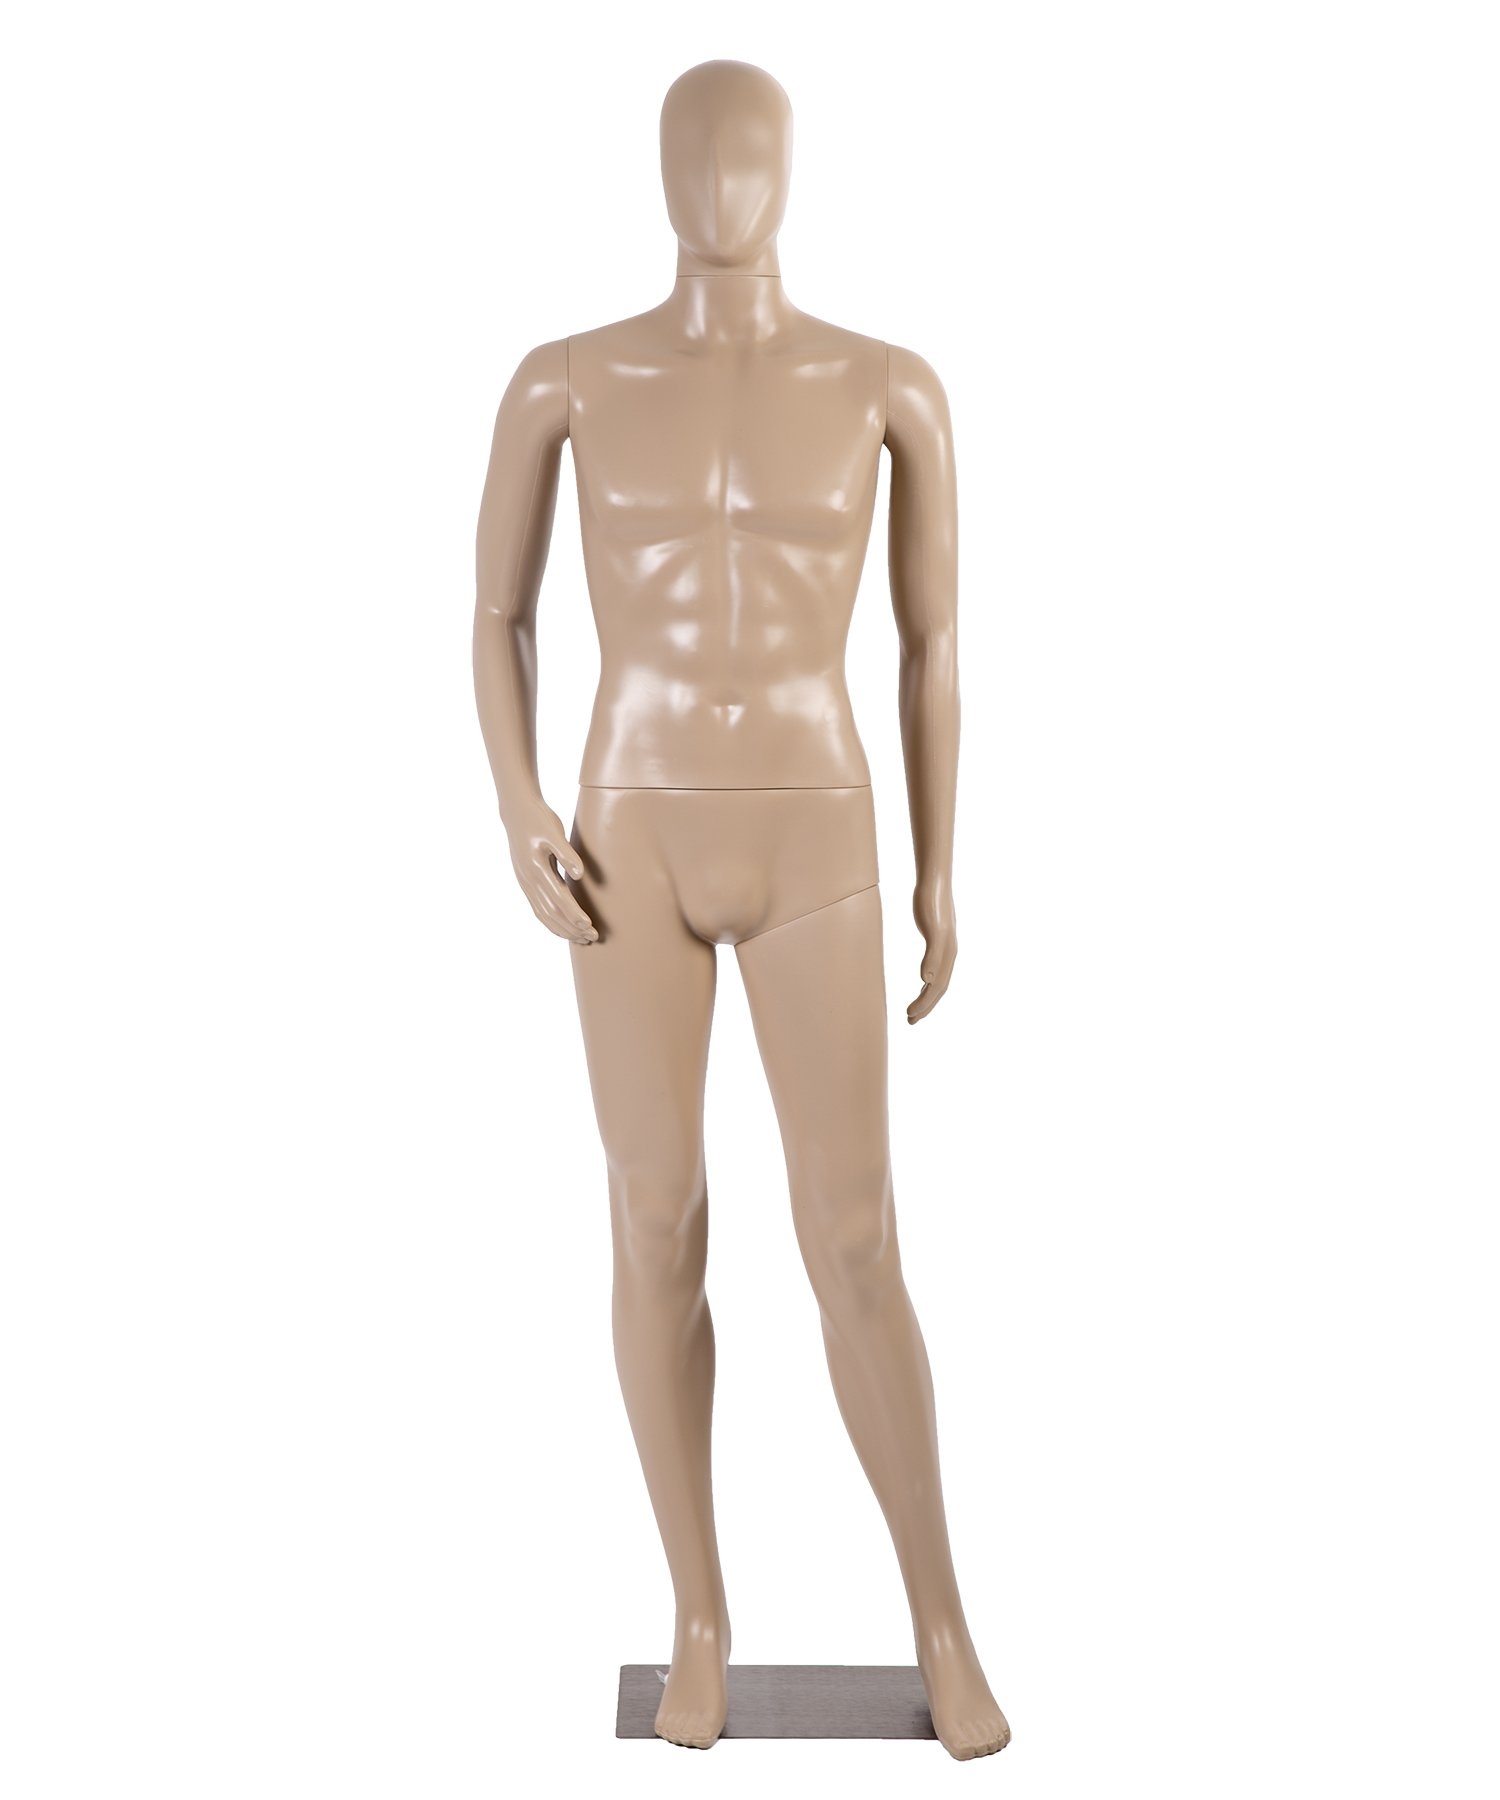 Male Full Body Realistic Mannequin Display Head Turns Dress Form w/Base